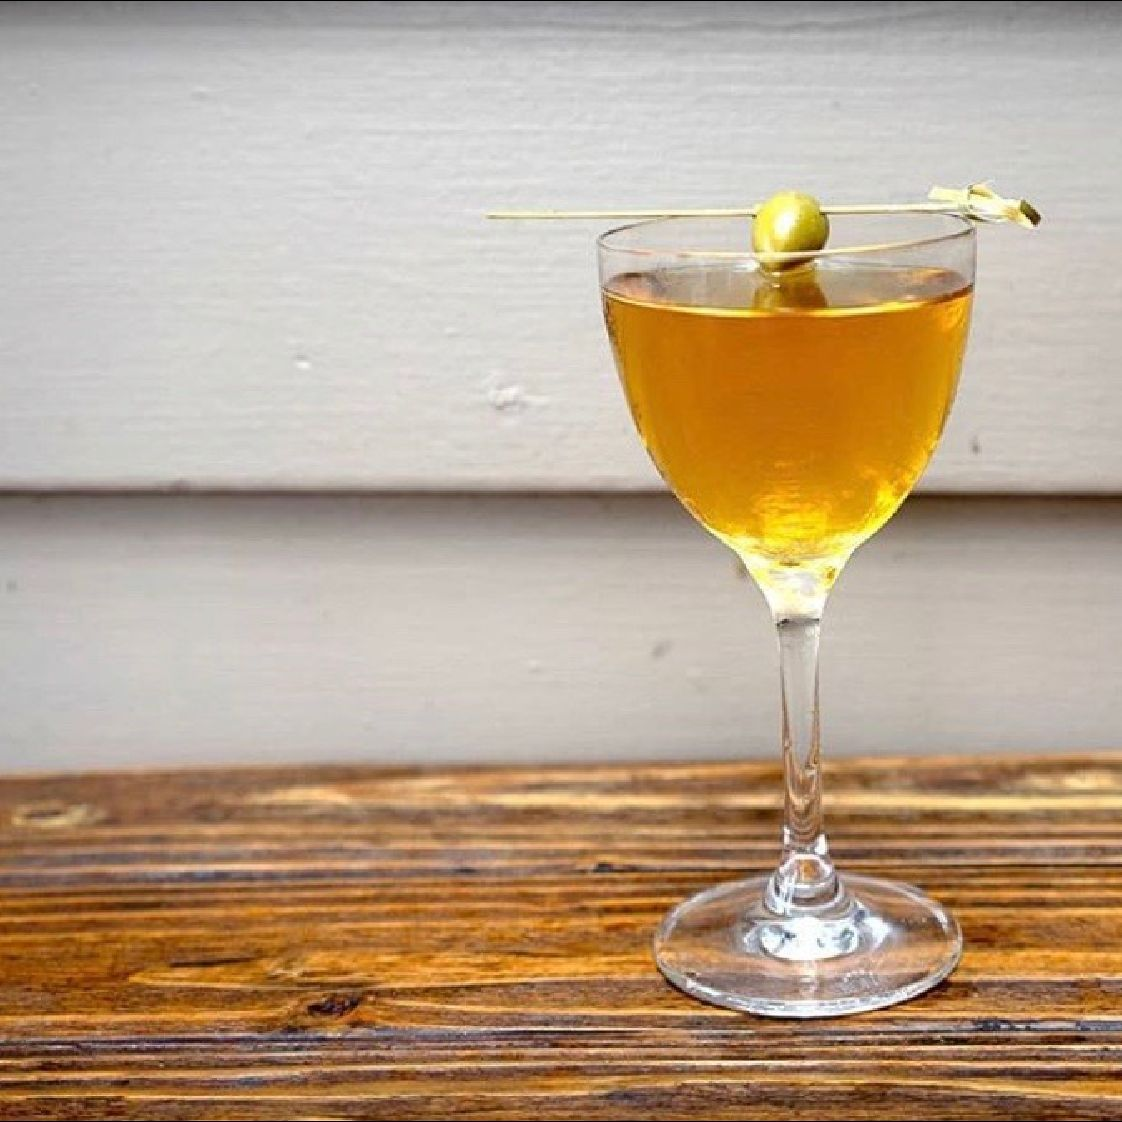 Inspired by a martini, this cocktail's name comes from the poem